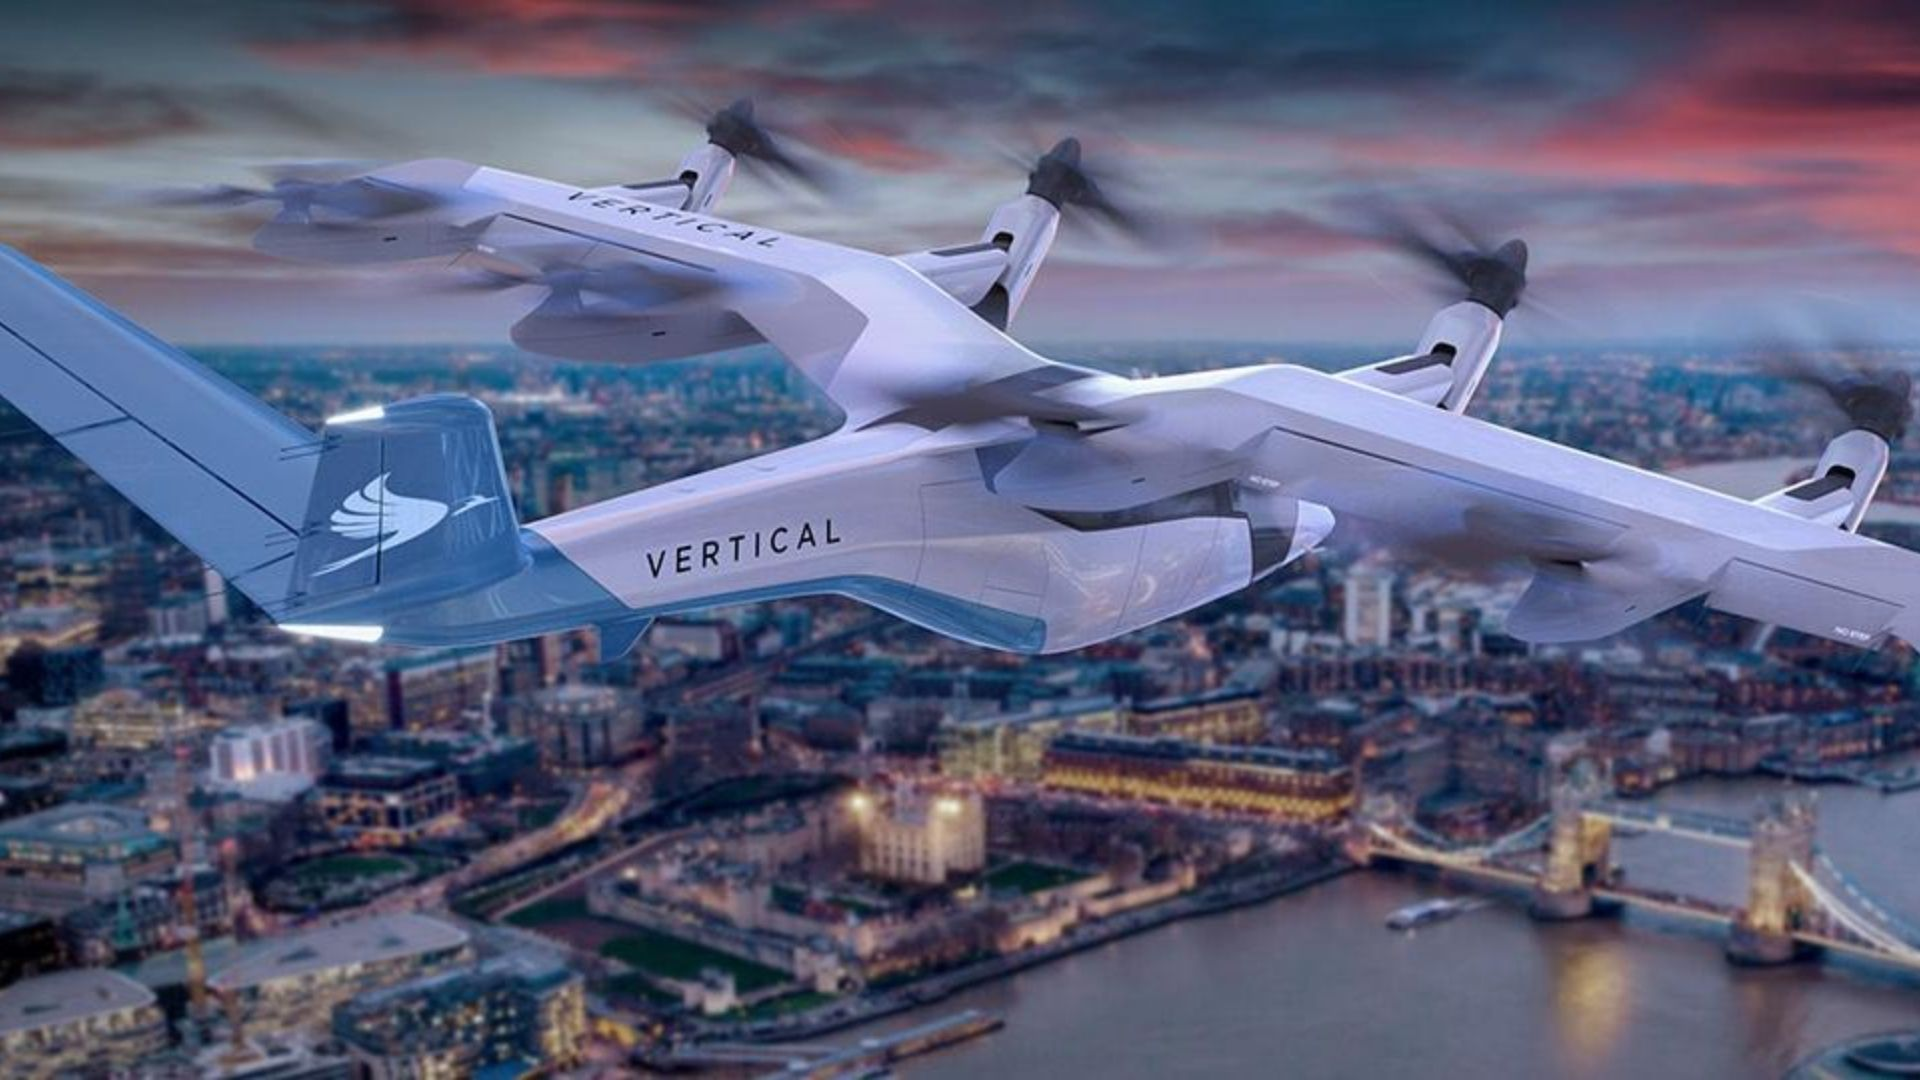 Illustration of Vertical Engineering's flying taxi flying over London at night.